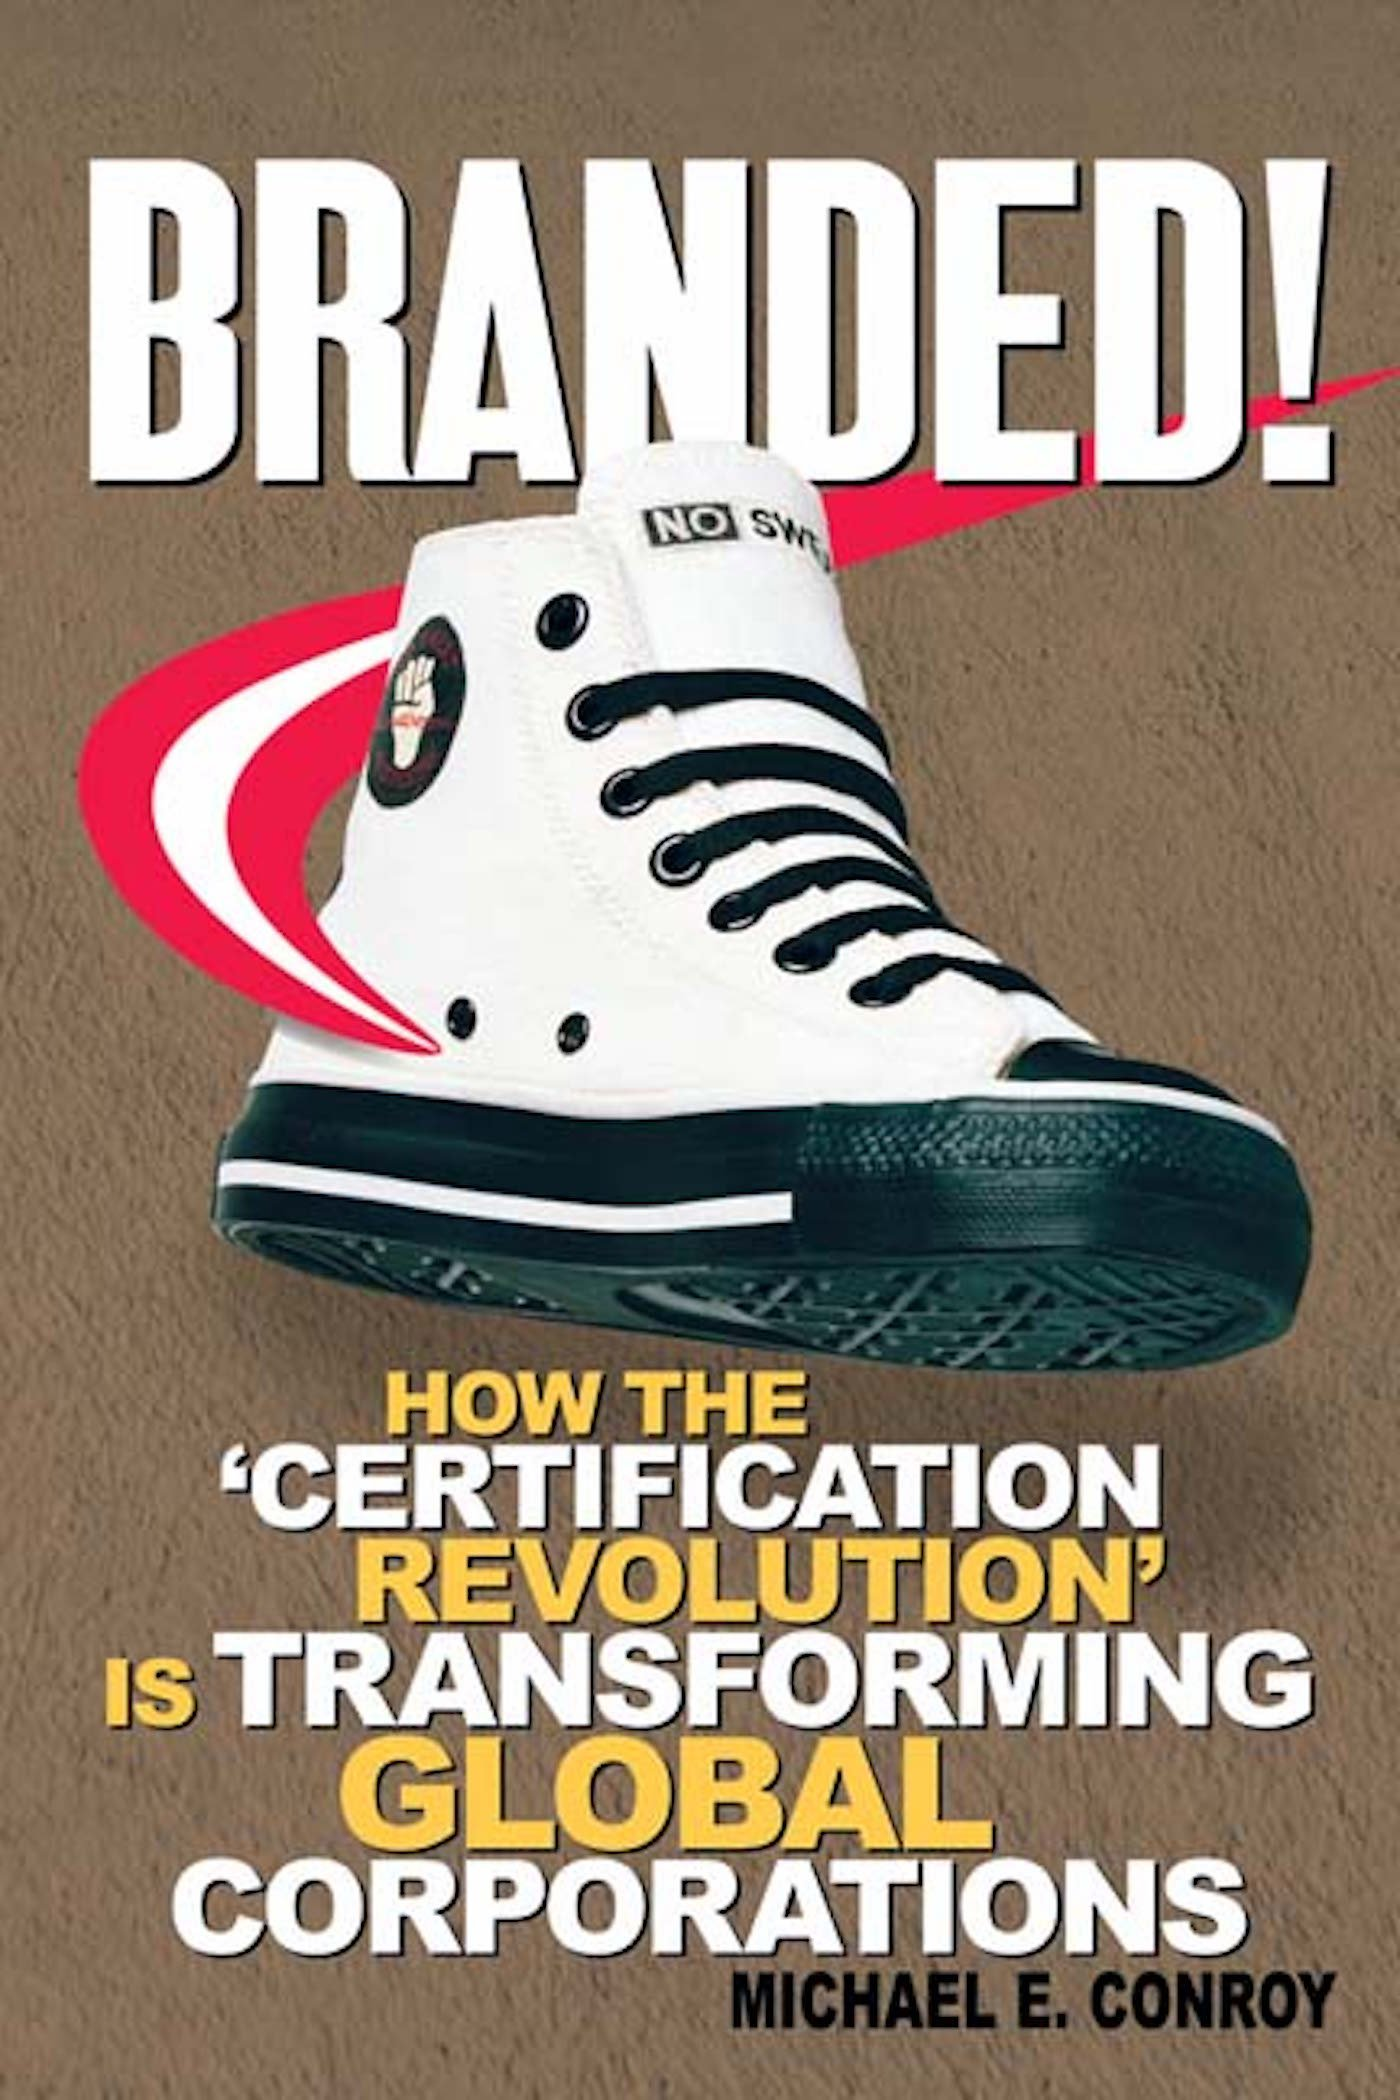 Branded!: How the 'Certification Revolution' is Transforming Global Corporations